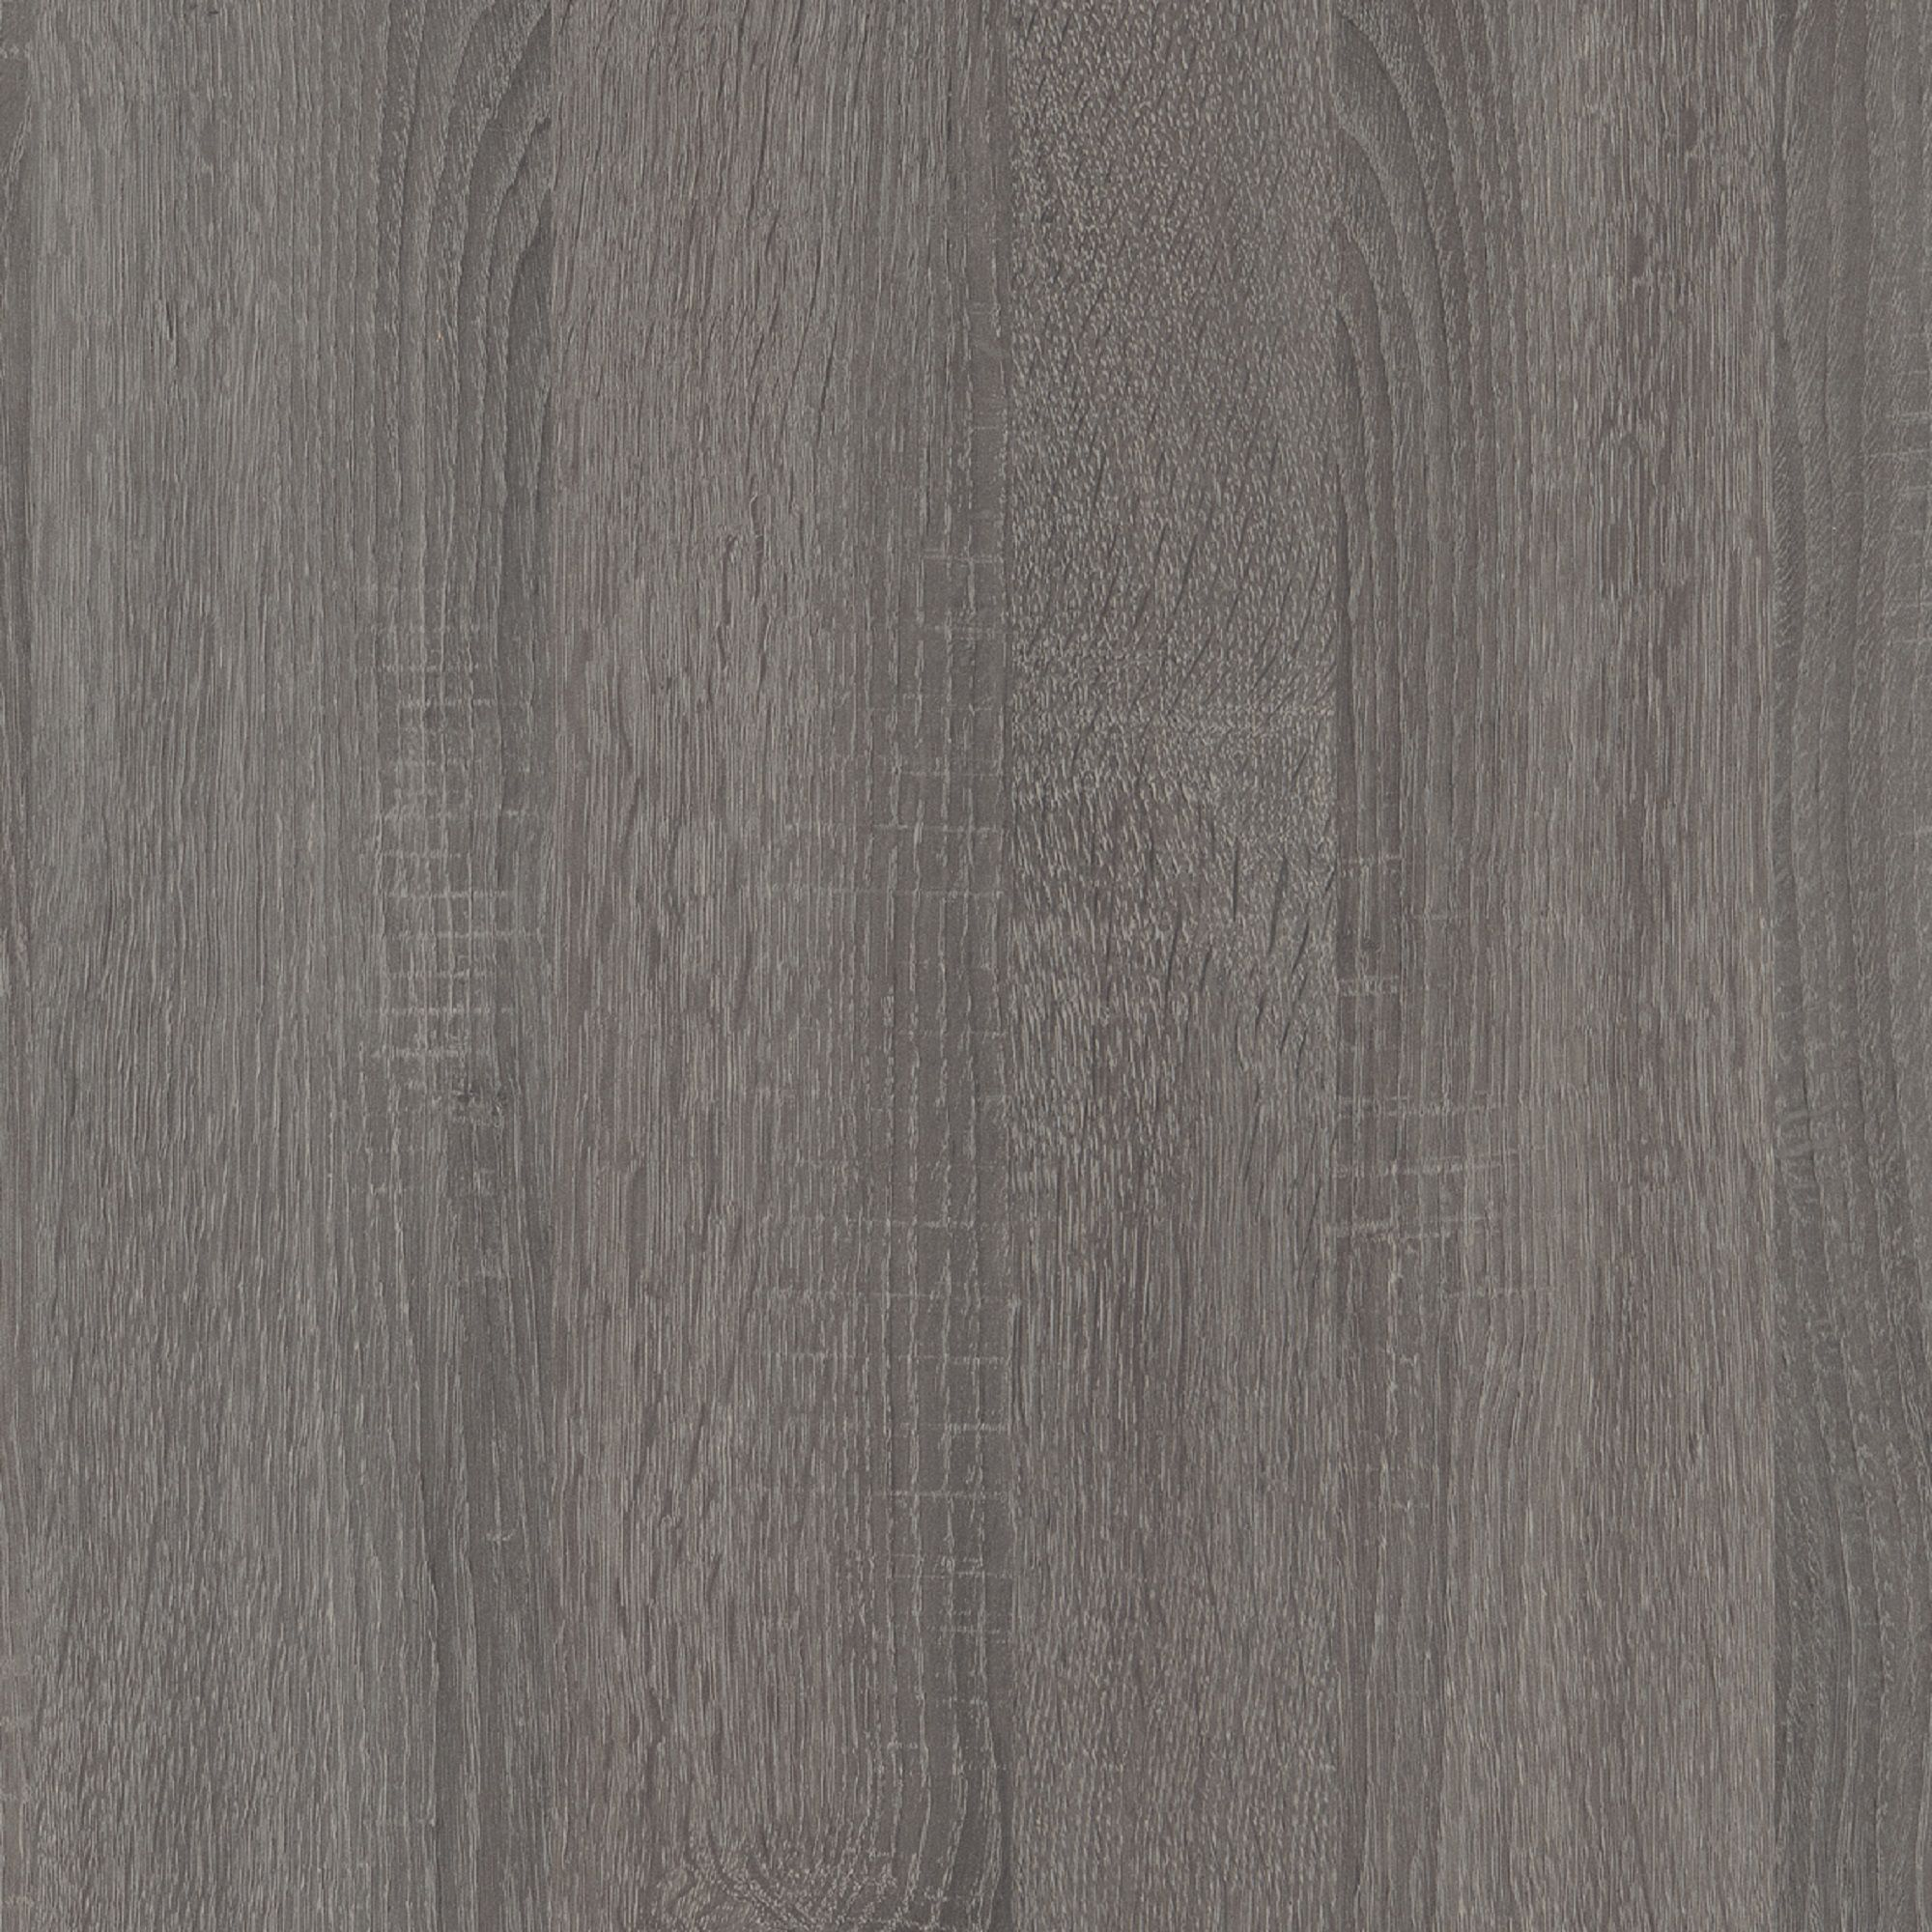 9mm Topia Dark Wood Effect Dark Wood Effect Kitchen